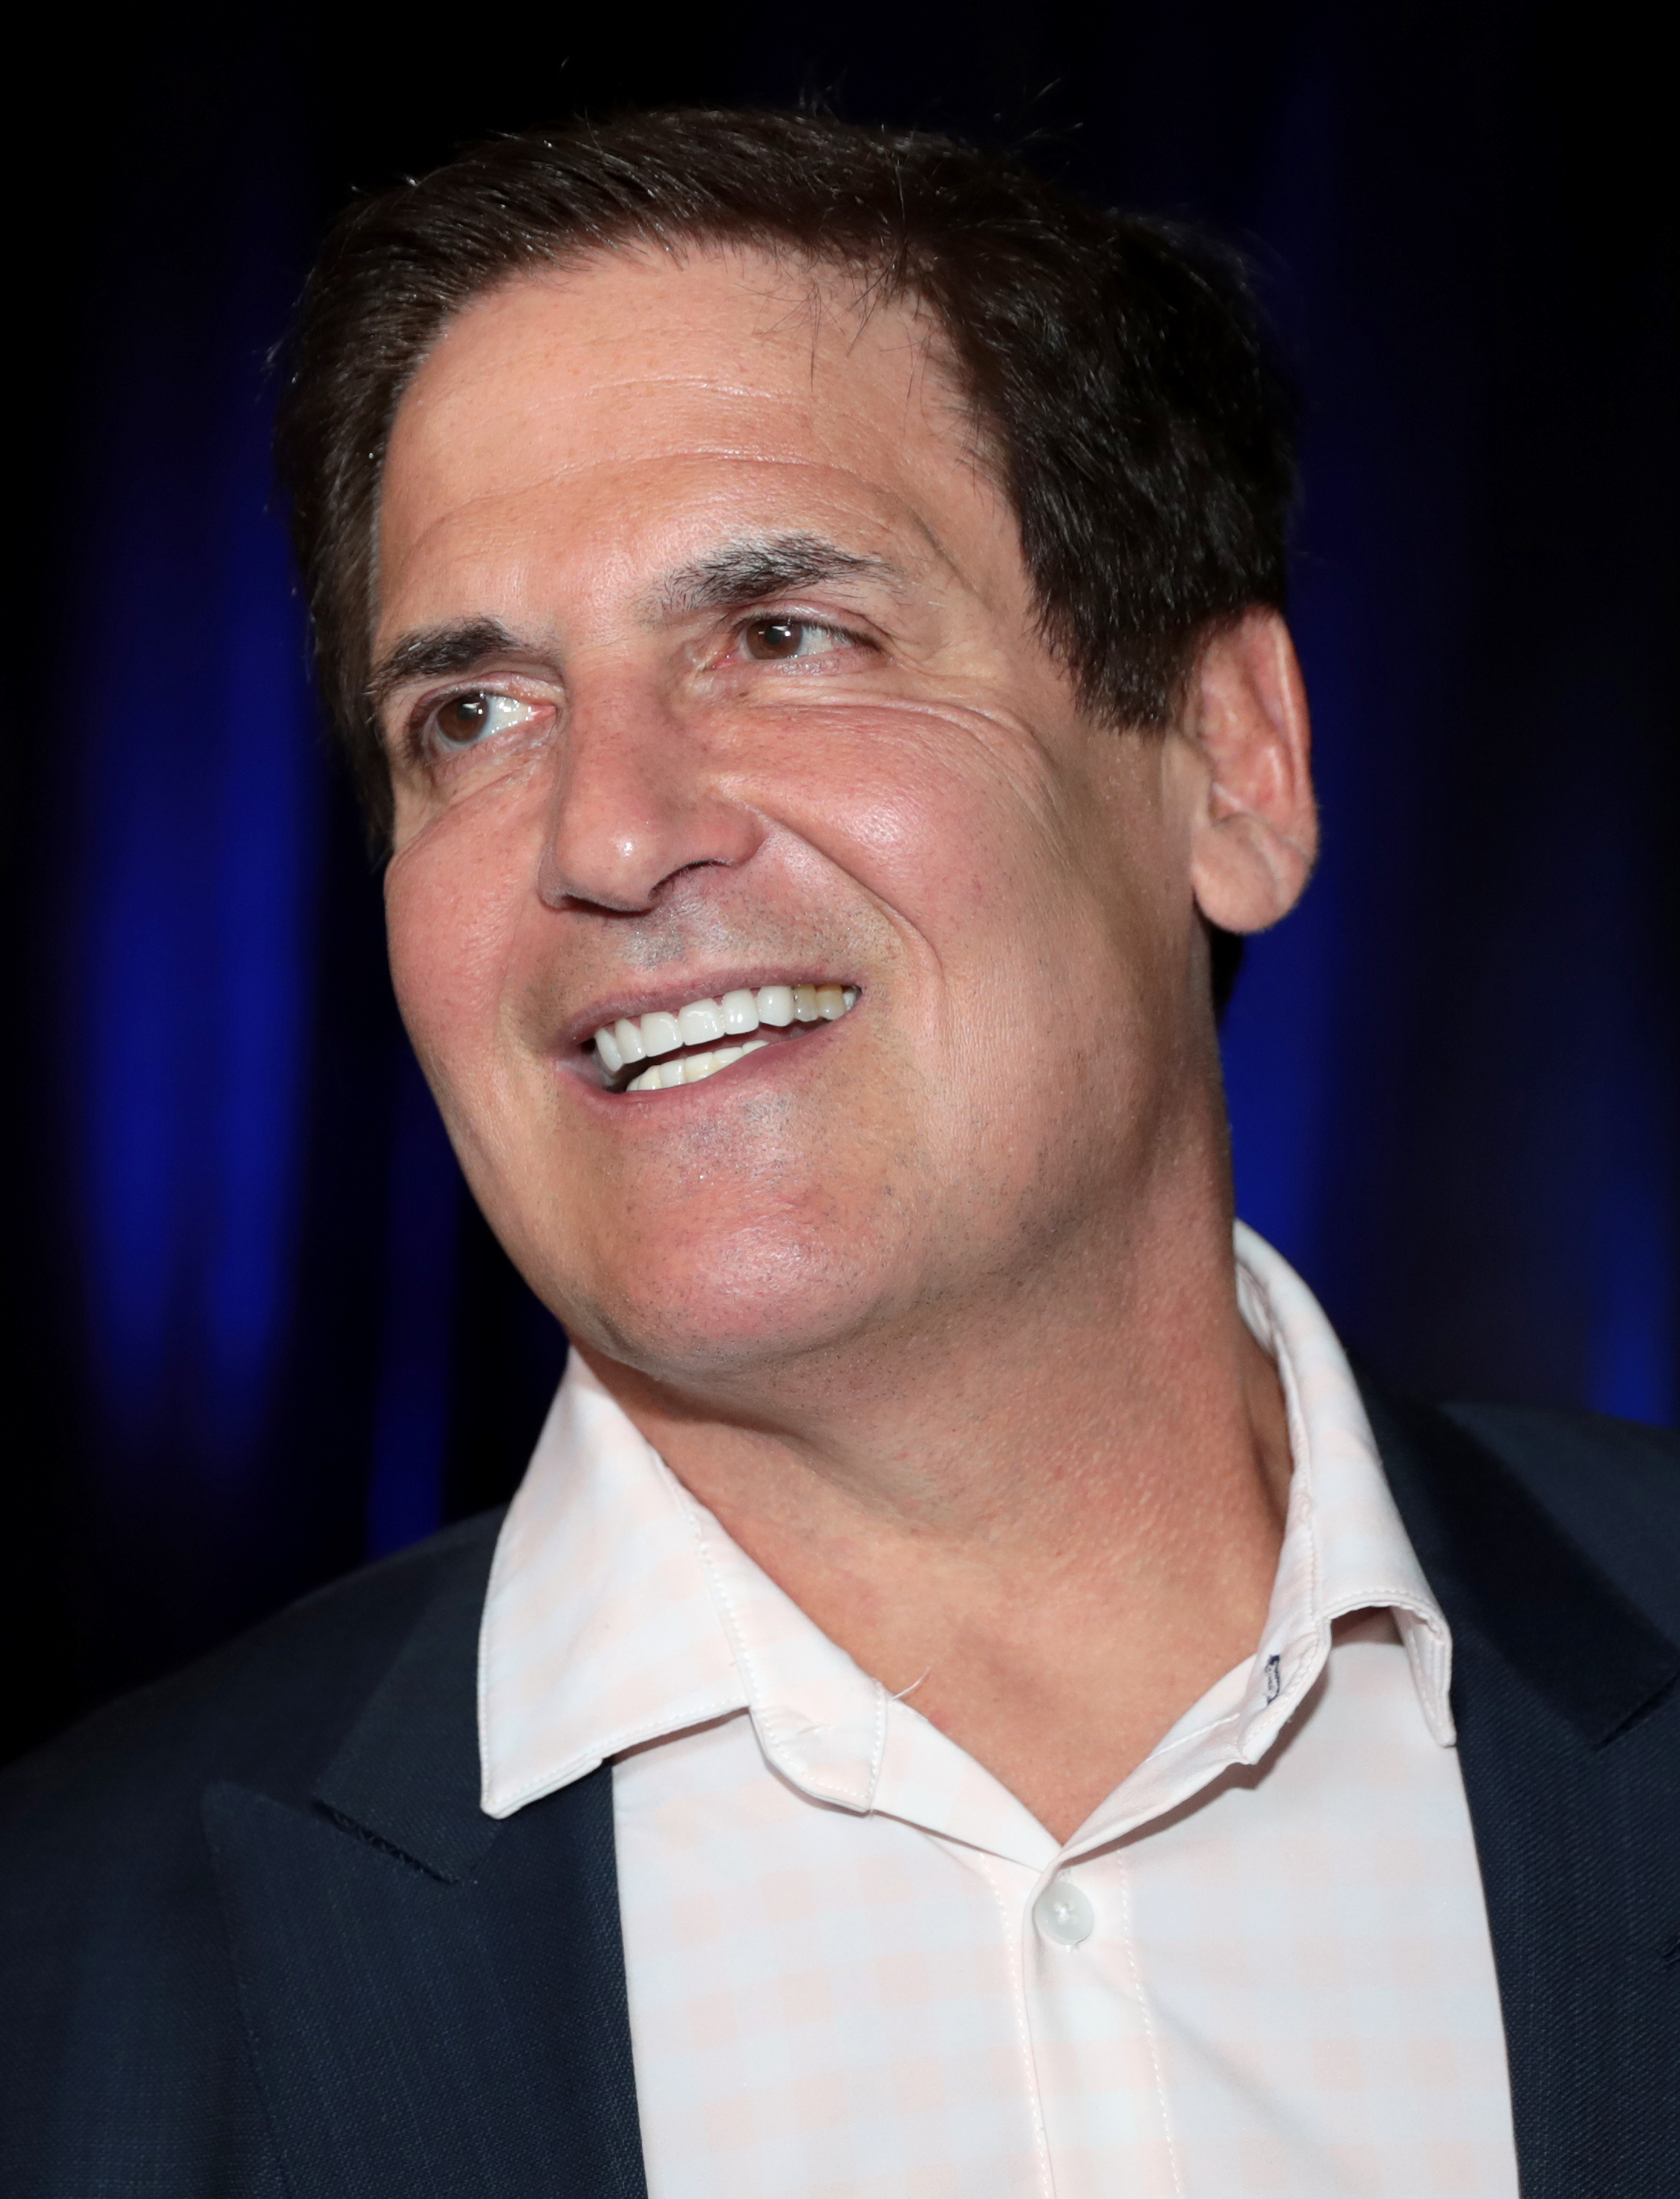 Mark Cuban Wikipedia